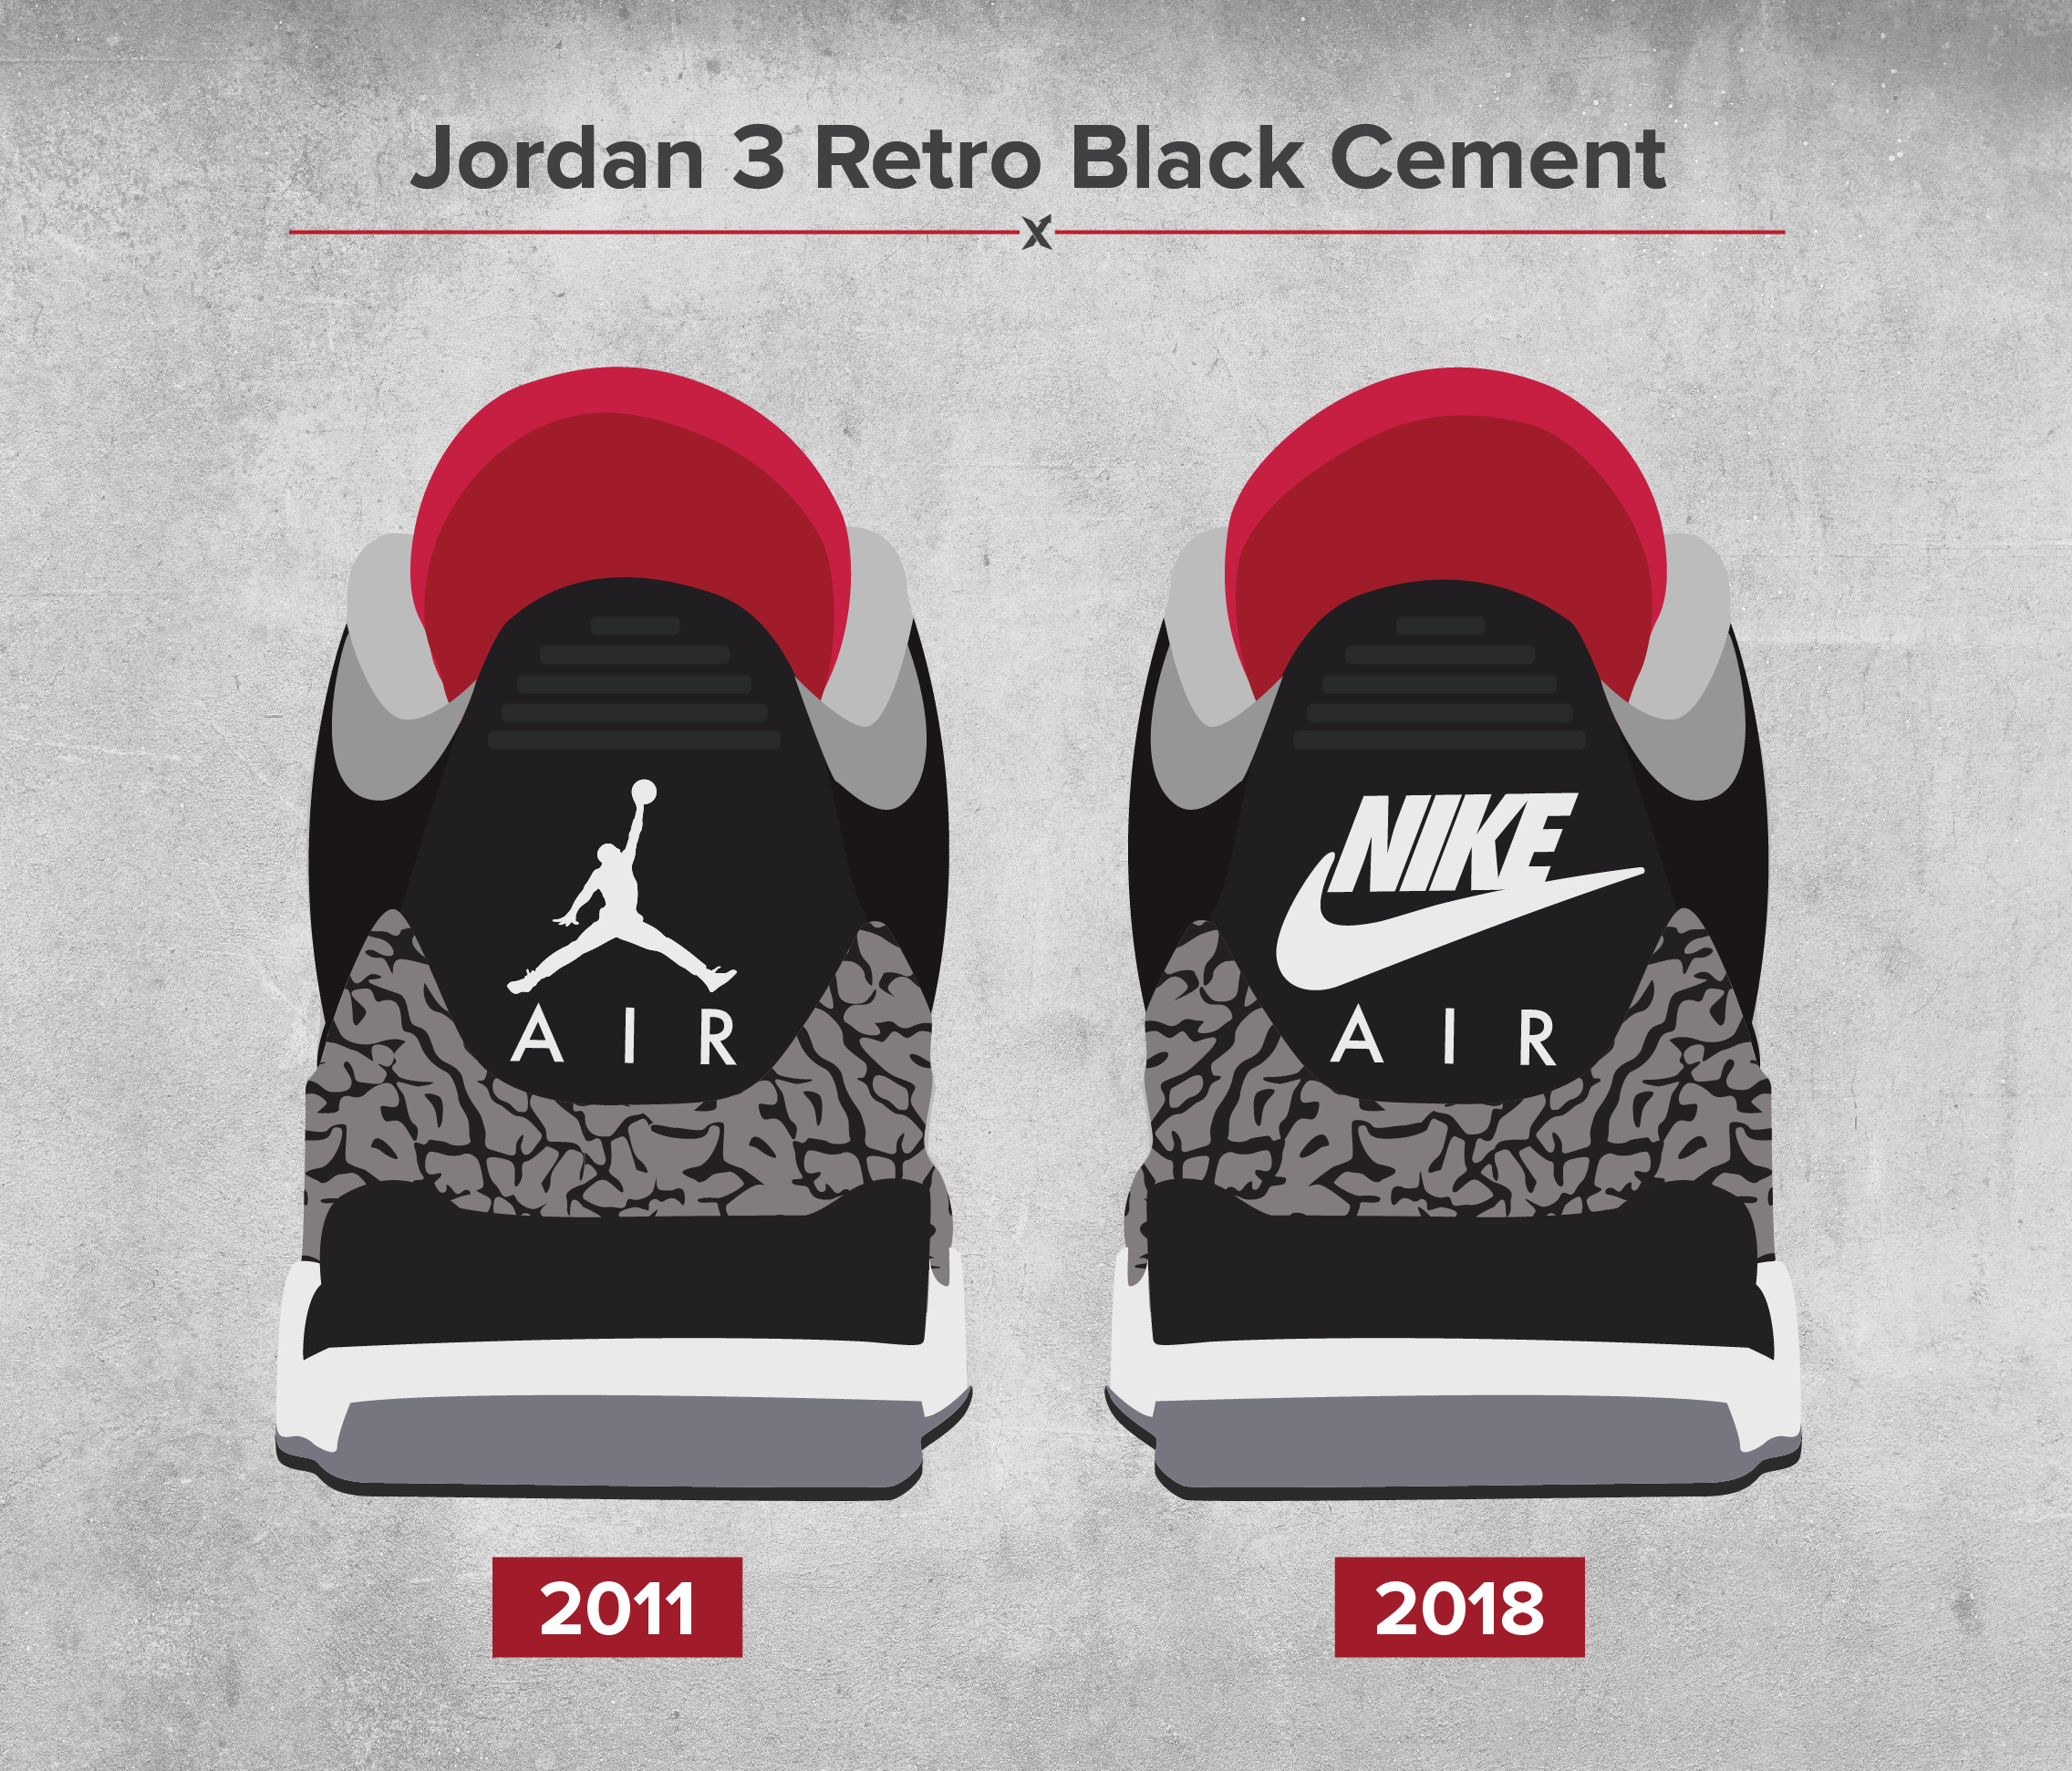 new style 8984a cb060 ... all other aesthetic dimensions- from the black cement colorway to the  elephant print toe front. Fidelity to the mythic past has long been one of  Jordan ...